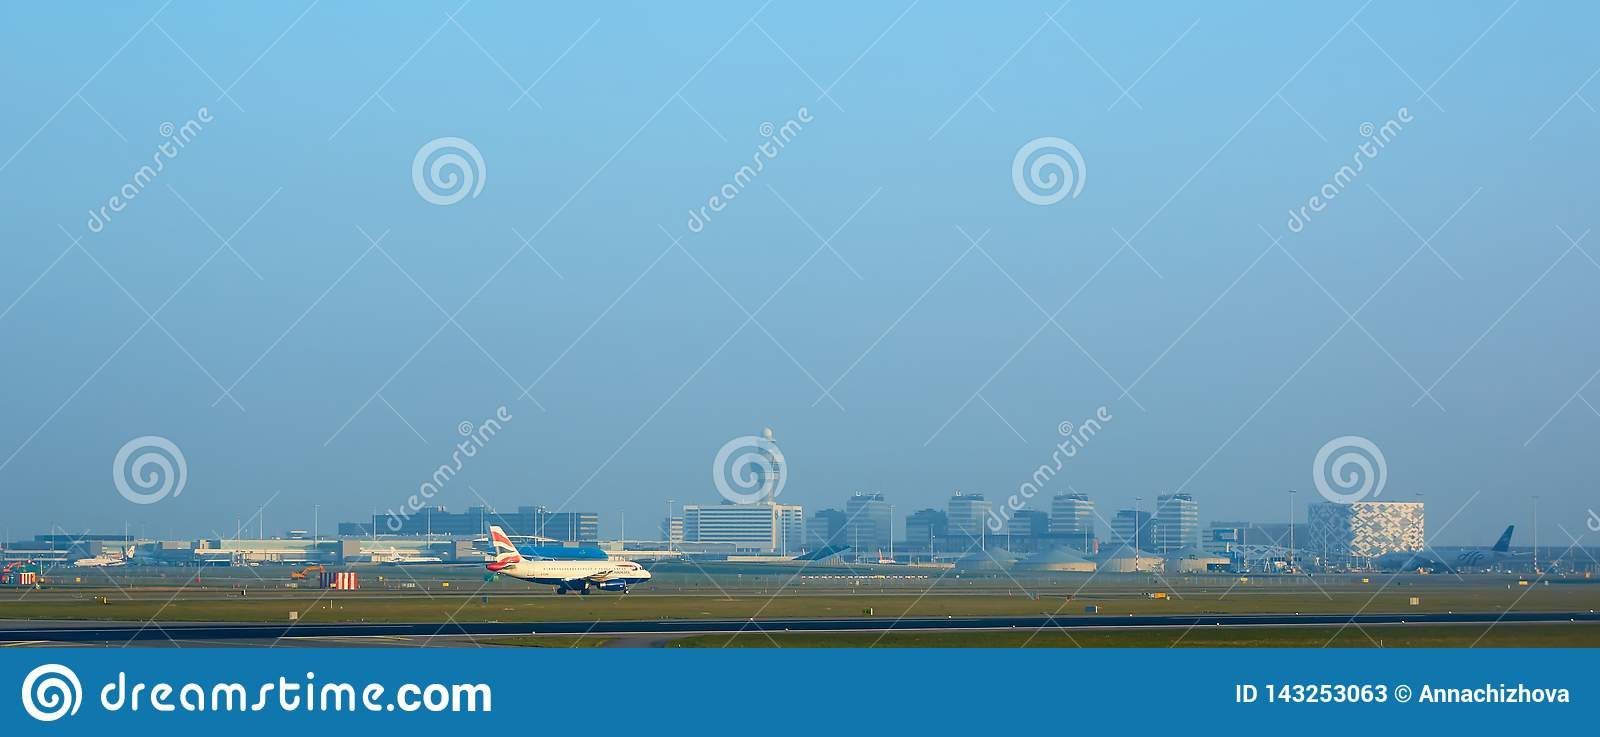 Amsterdam, Netherlands - March 11, 2016: Amsterdam Airport Schiphol in Netherlands. AMS is the Netherlands` main